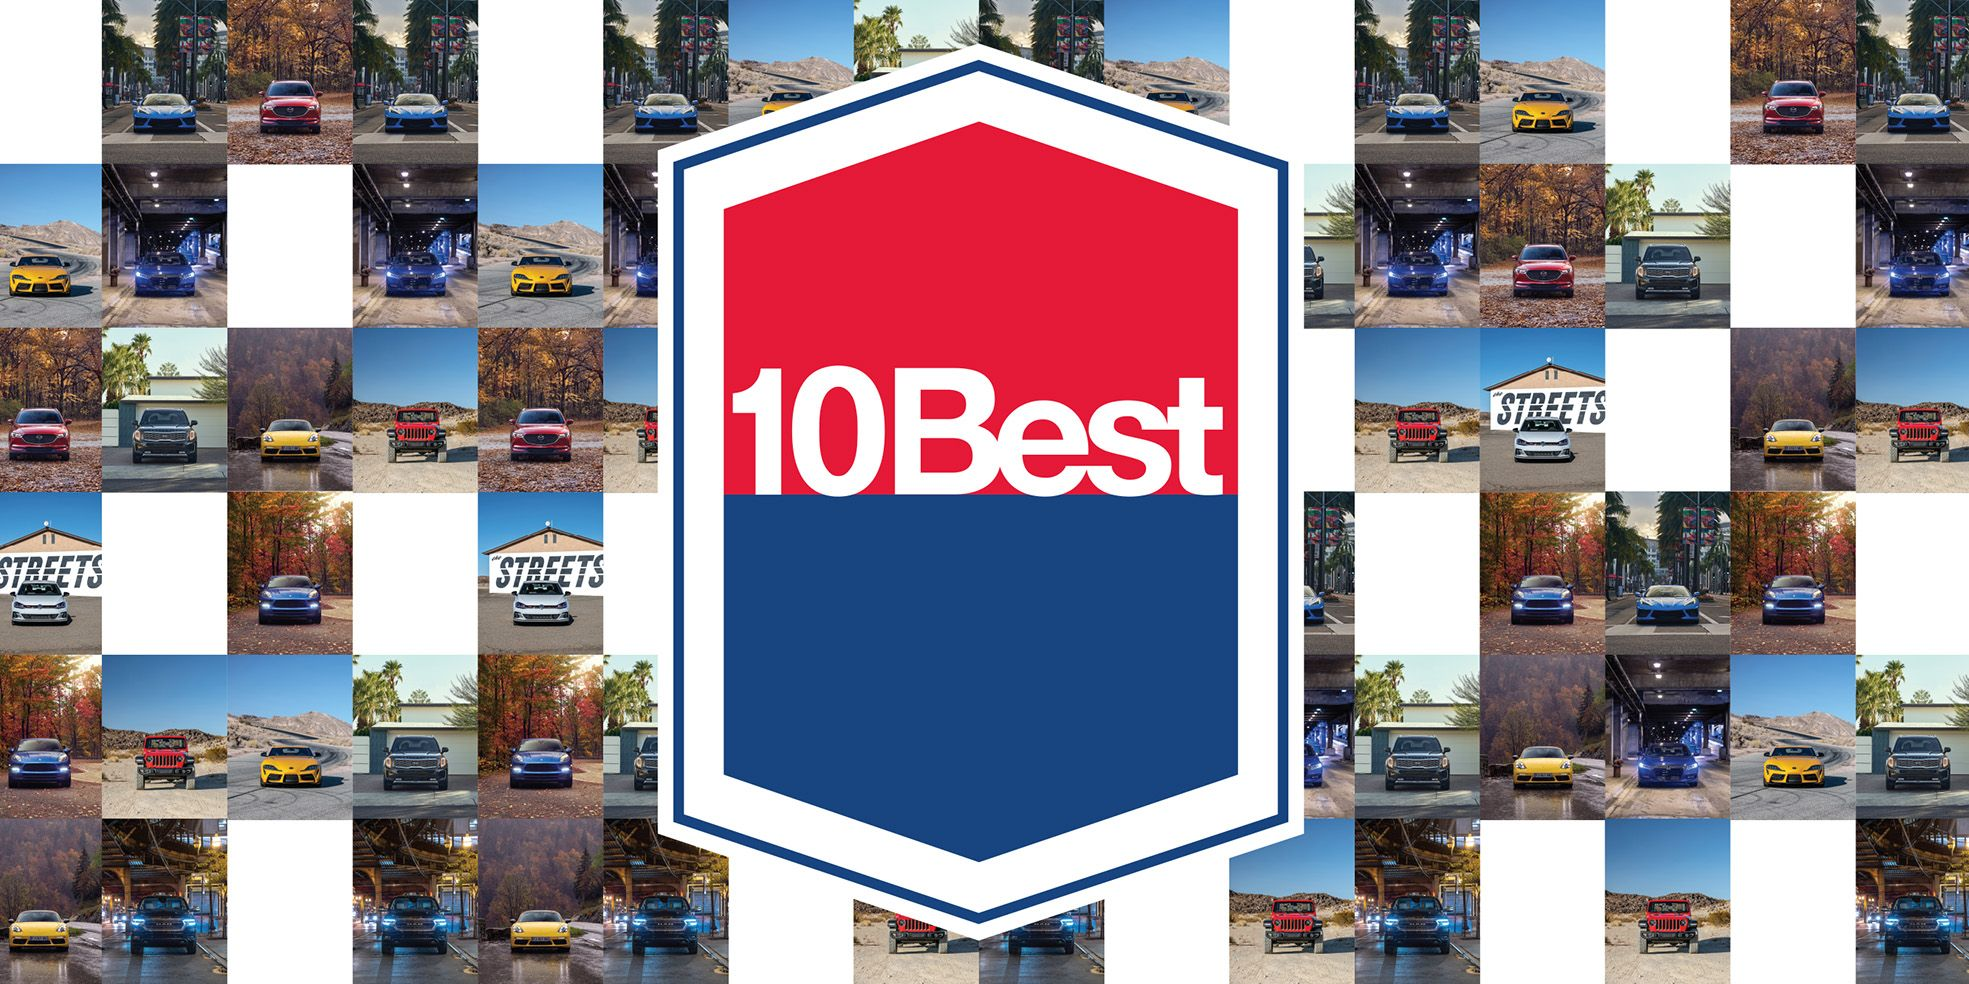 Best Drivers 2020.10best Cars And Trucks For 2020